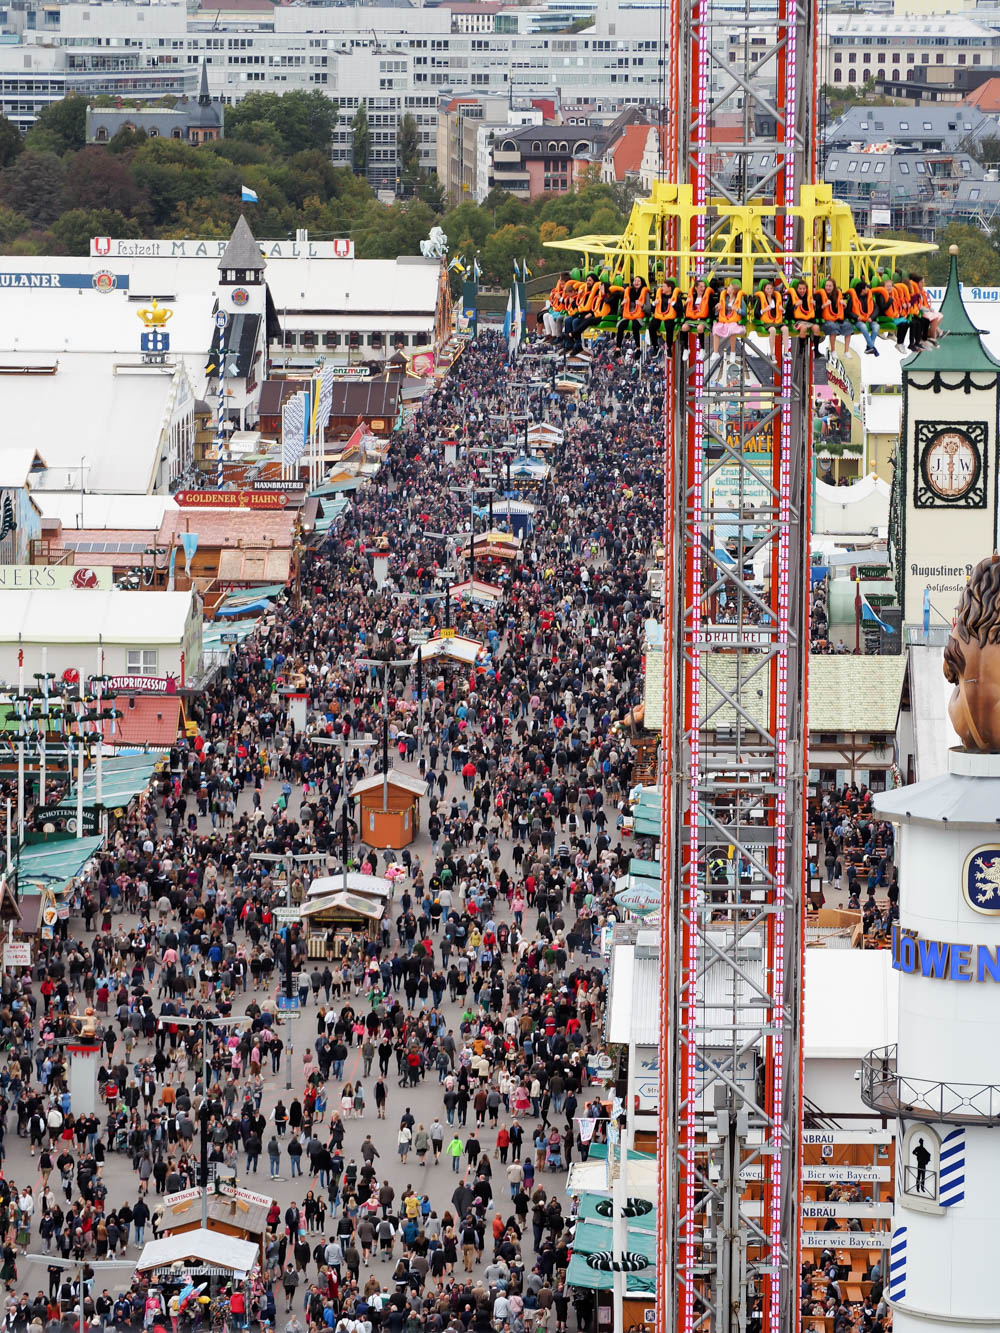 Oktoberfest crowds   Will Oktoberfest 2021 take place? Is Oktoberfest 2021 going to be canceled? All the info you need to know like what to do, how to plan ahead, official announcements out of Munich, Germany